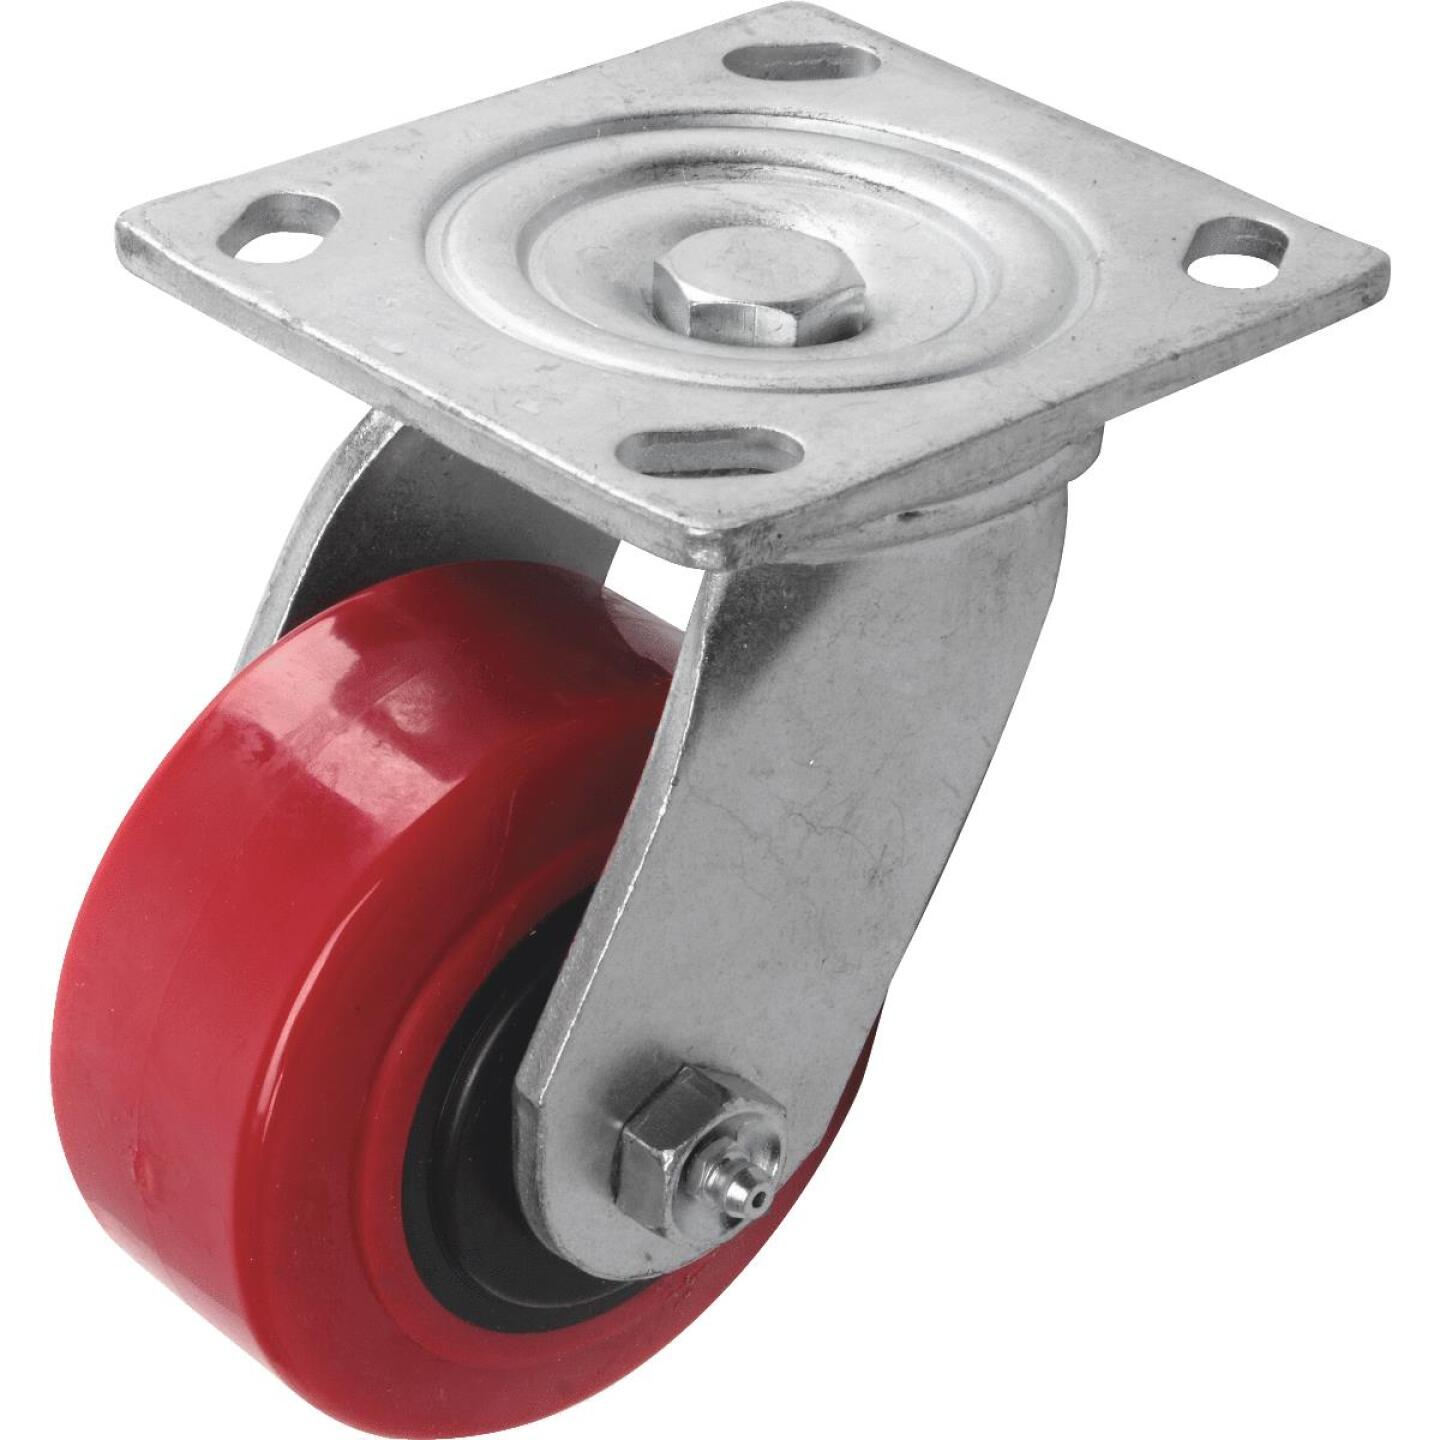 Shepherd 4 In. Polyurethane Medium-Heavy Duty Swivel Plate Caster Image 1